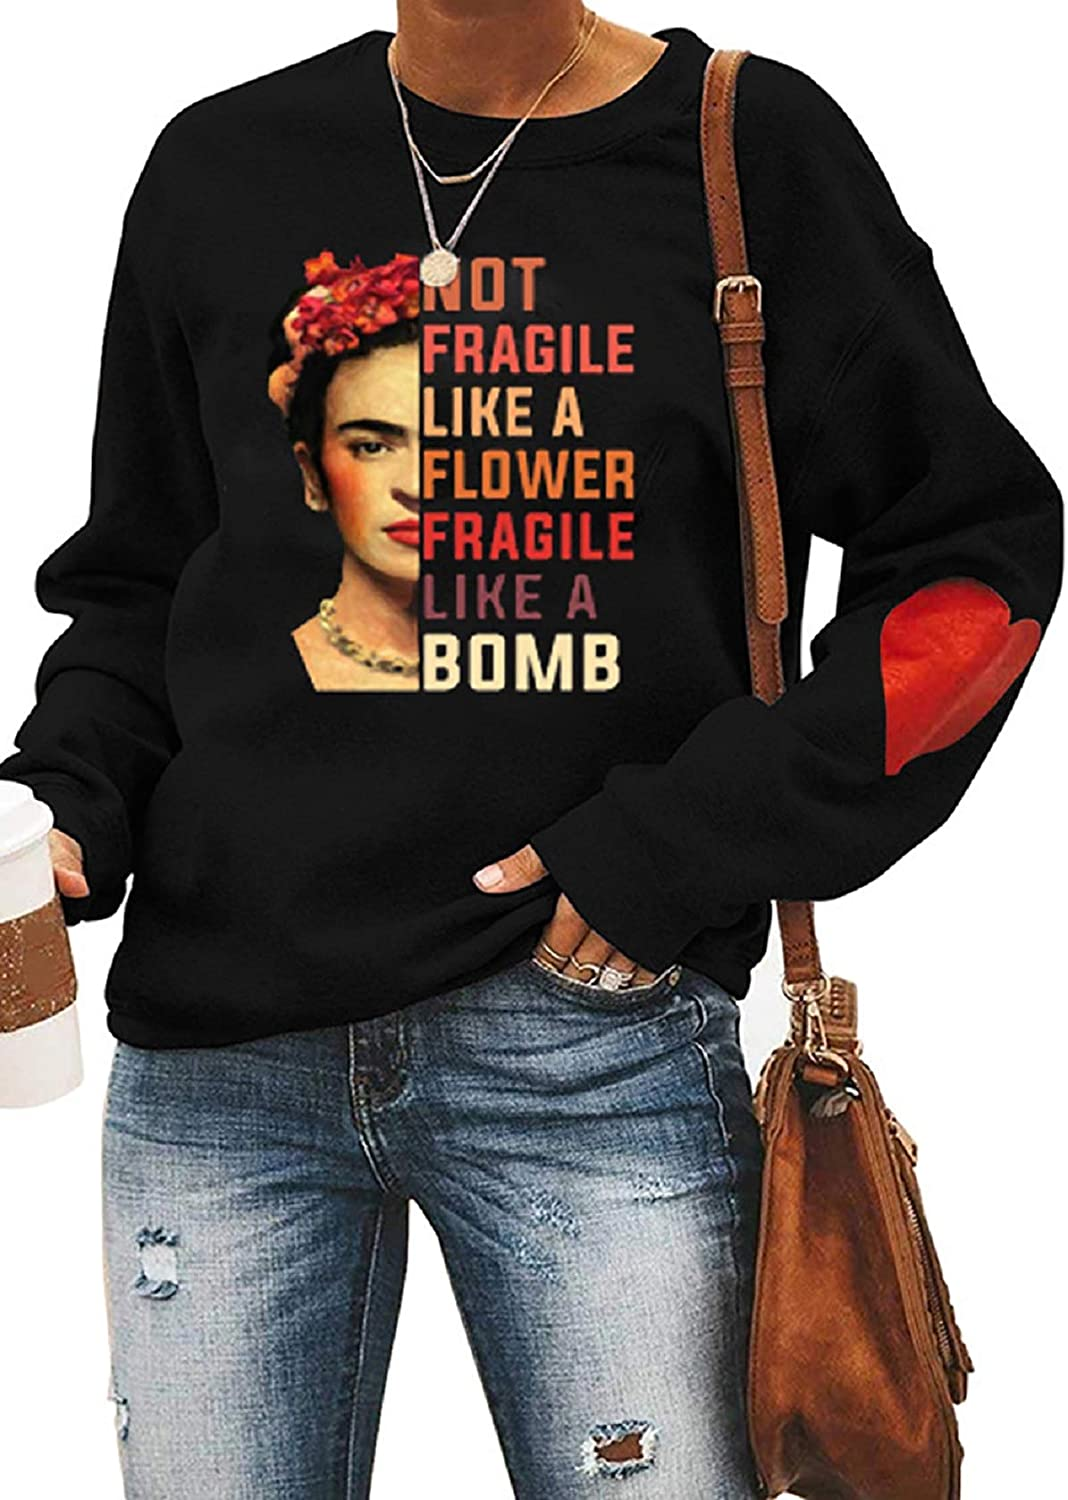 Womens Love Pattern Long Sleeve Sweatshirt Frida Kahlo Floral Mexico T-Shirt Tee Crew Neck Casual Pullover Top